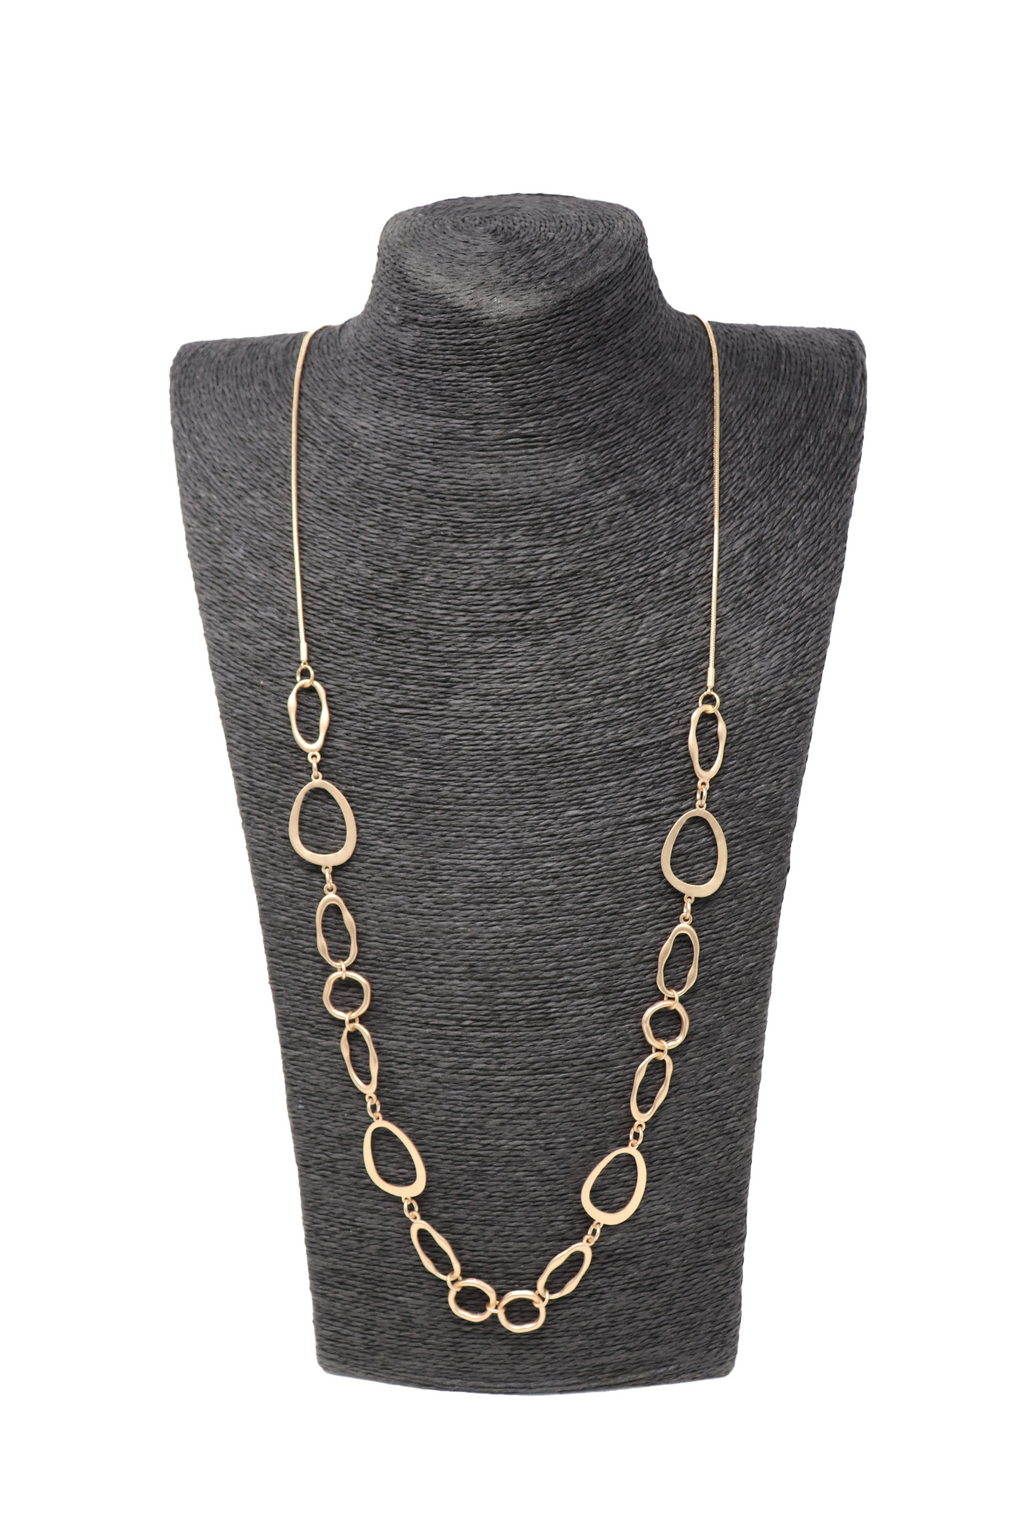 Fashion Necklace LongChain